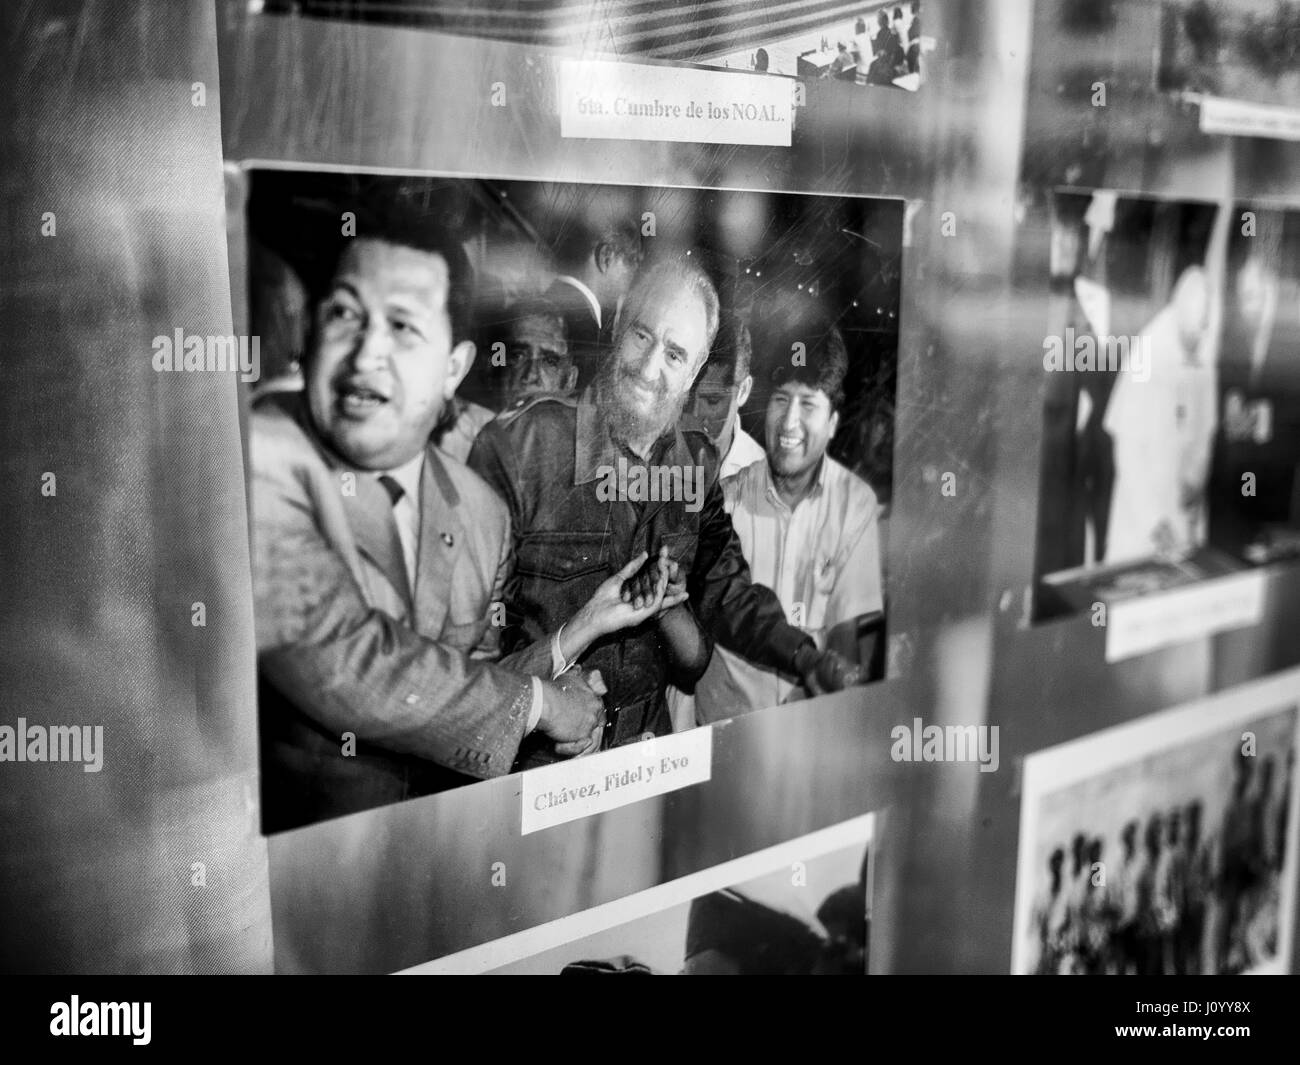 Photo of Castro, Cháve and Morales in a school in Havana, Cuba - Stock Image